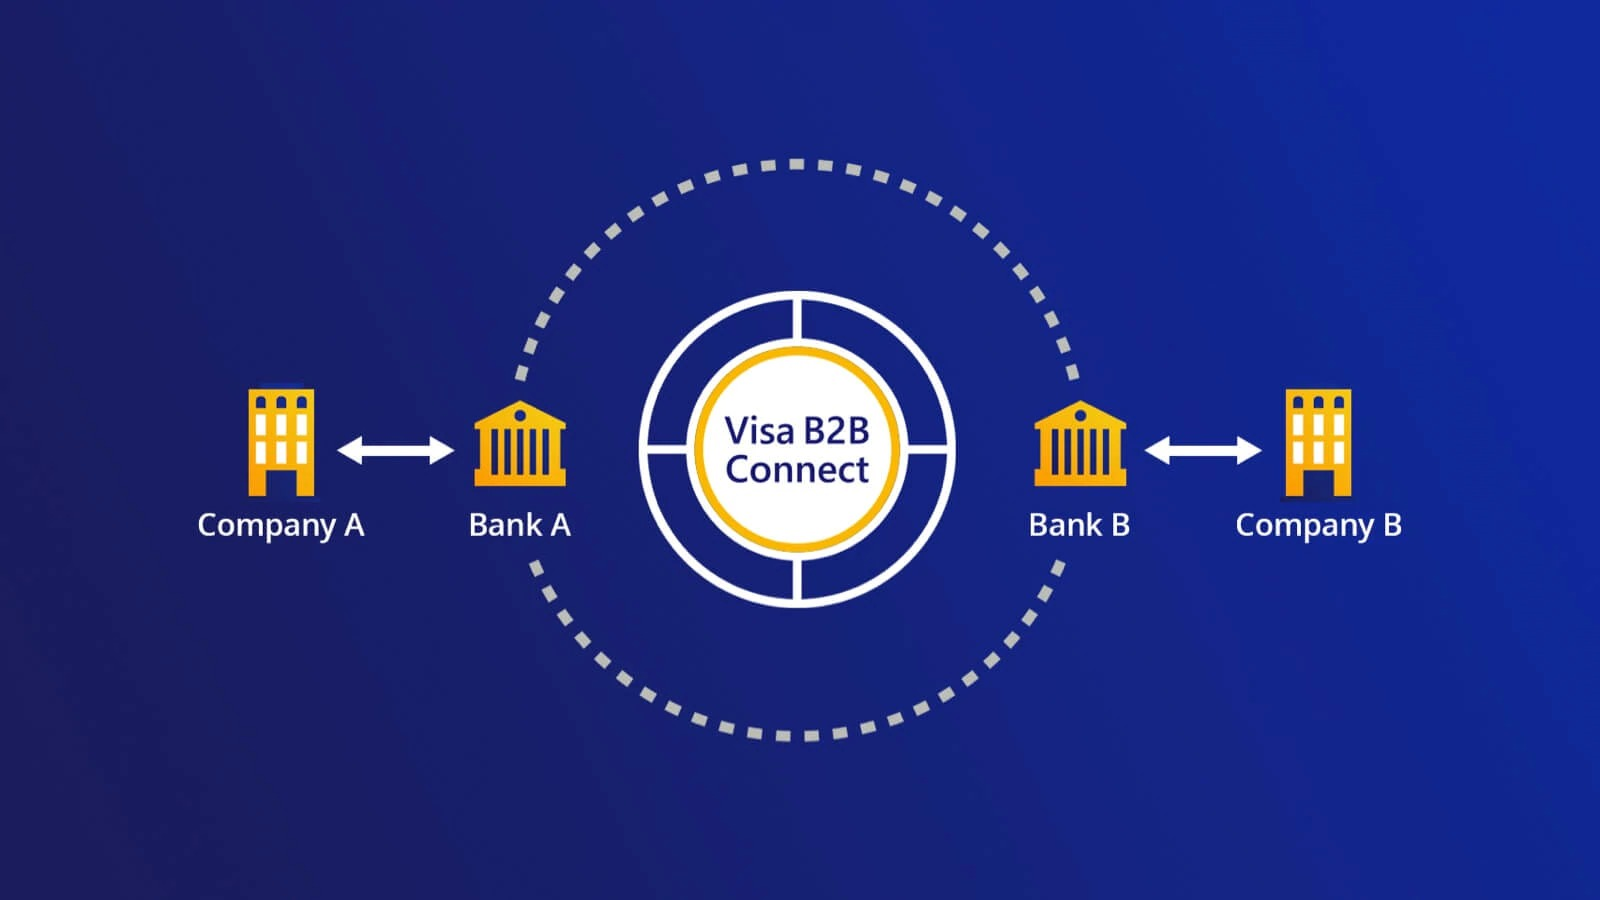 Visa launches commercial blockchain-based payments system with B2B Connect